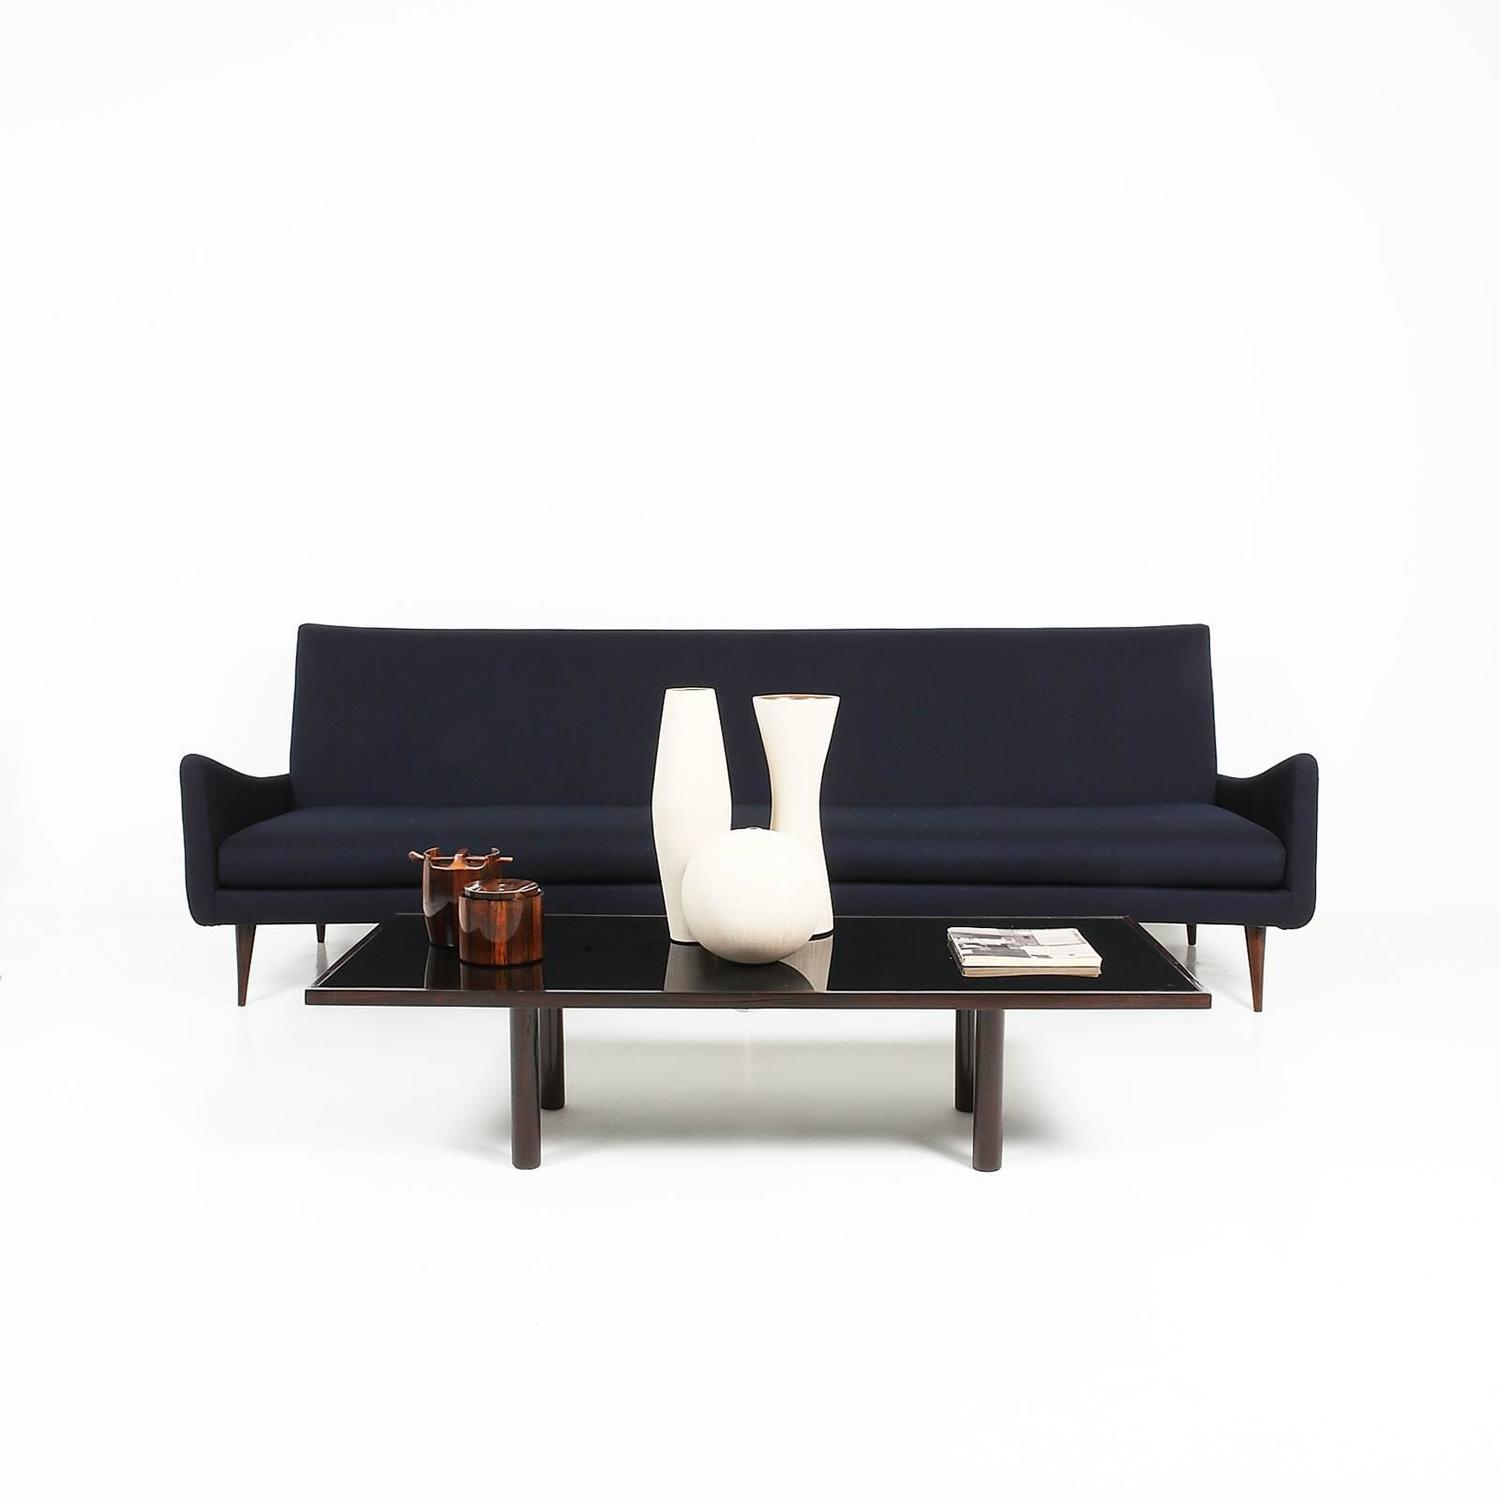 Unique Coffee Table By Joaquim Tenreiro C 1960 For Sale At 1stdibs